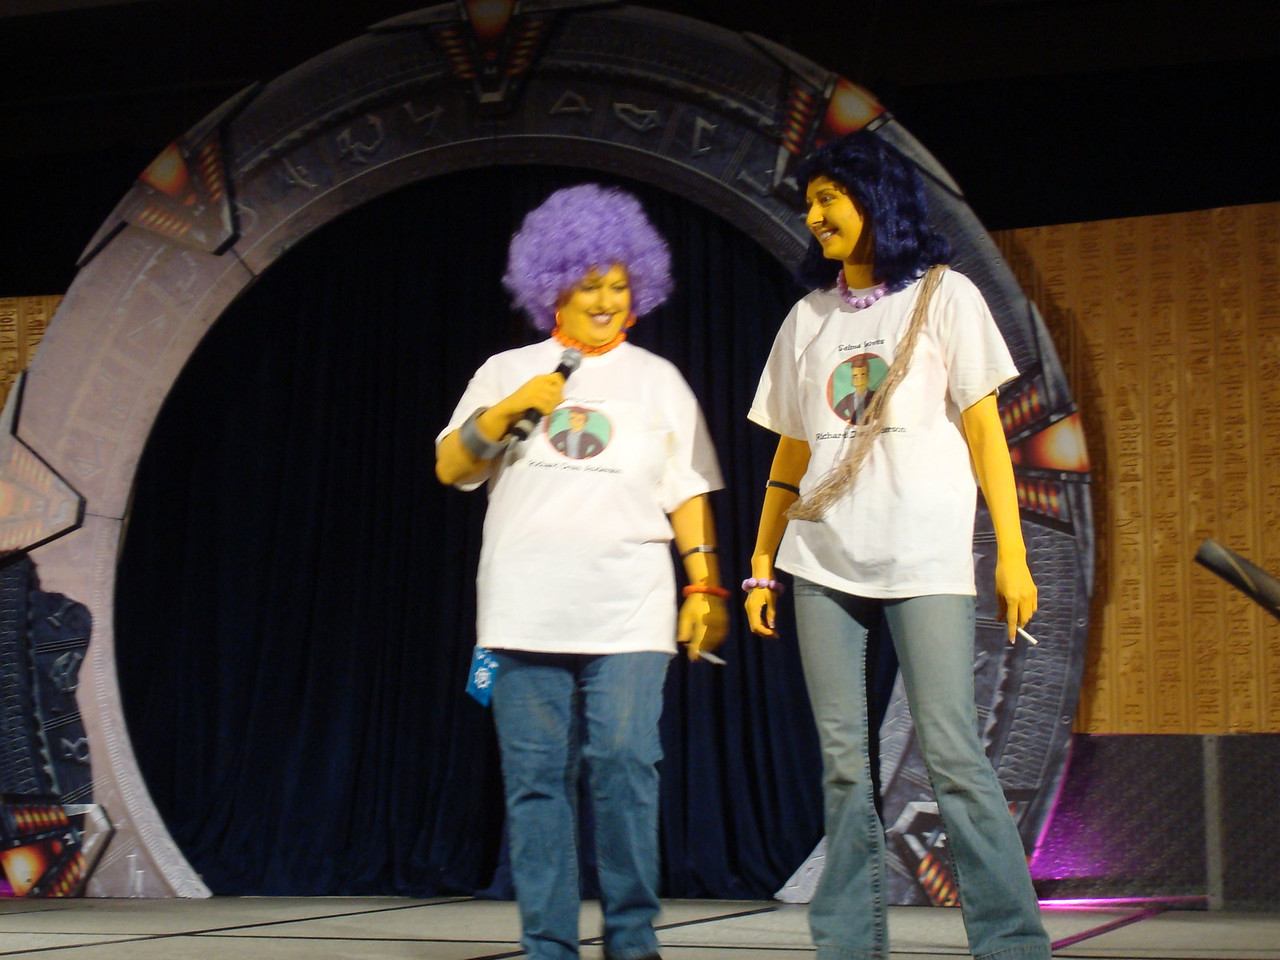 Costume contest. Patti and Selma (from The Simpsons; they're MacGyver fans).